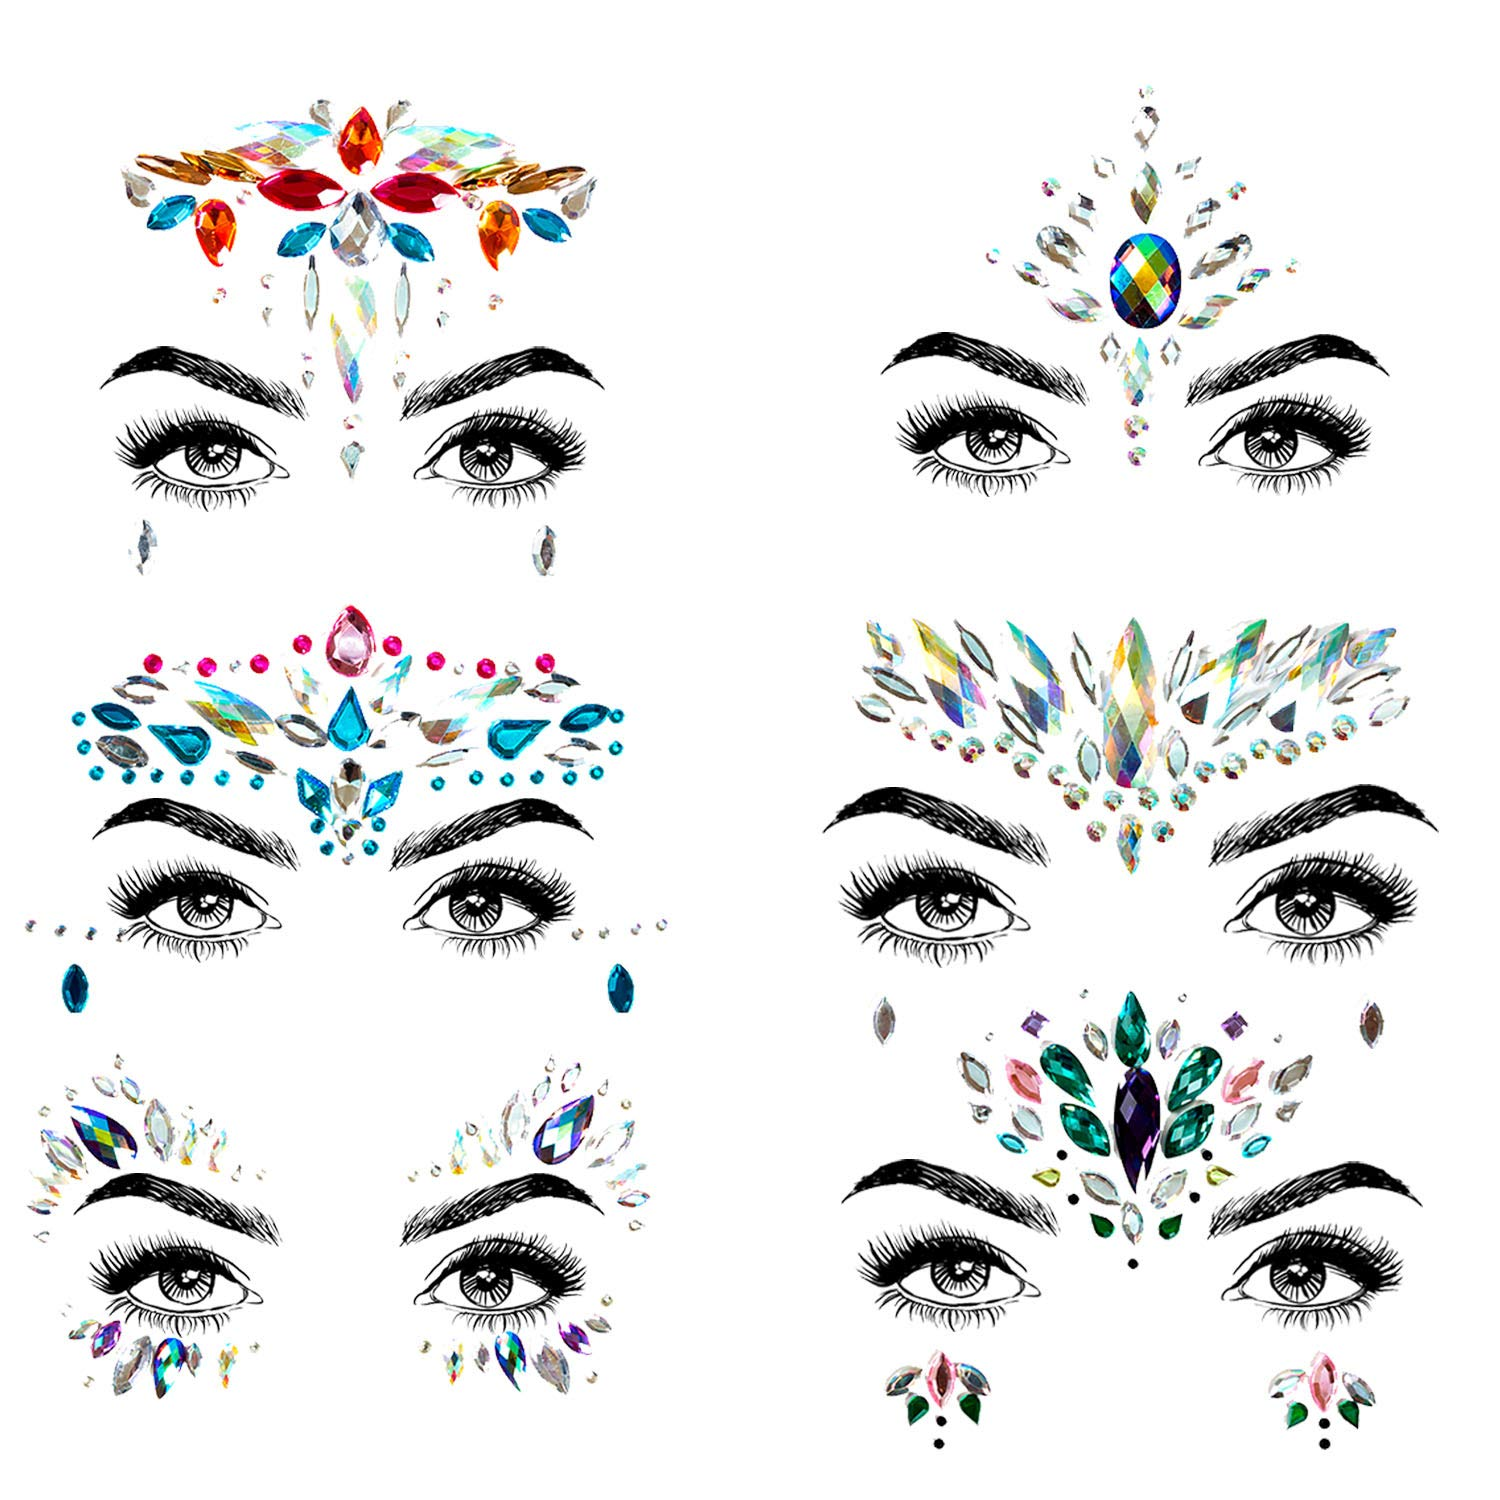 Face Jewelry Stickers Rhinestone Tattoo, Temporary Self Adhesive Face & Body Jewels with Primer gel For Festival